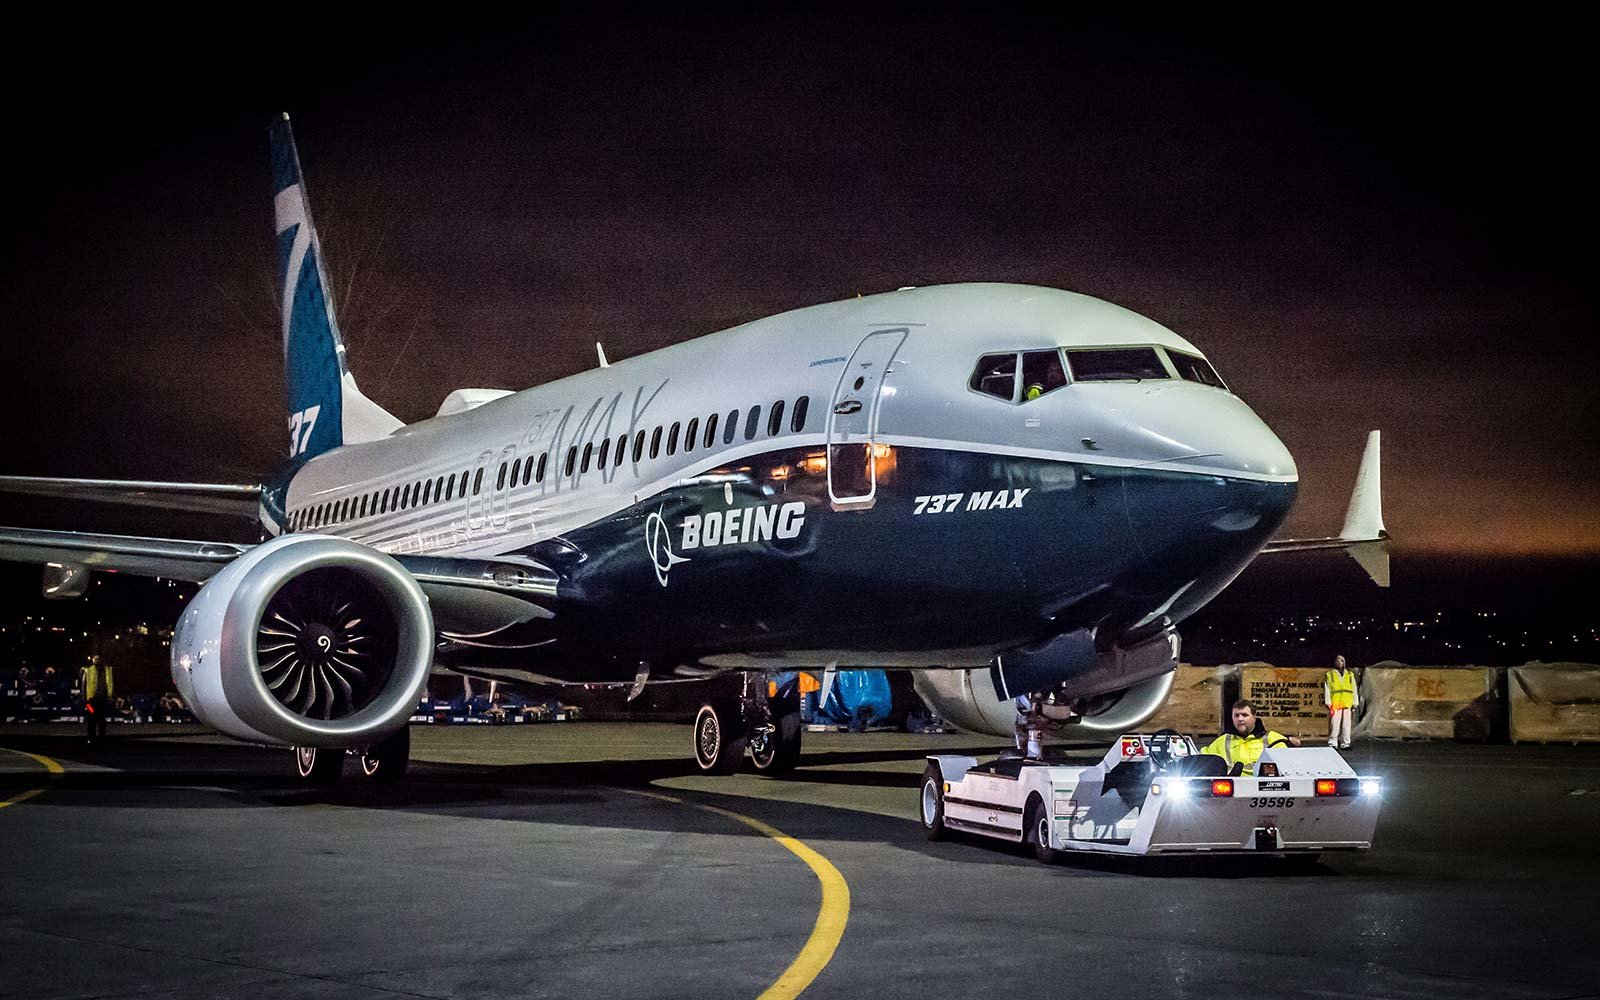 Boeing 737-MAX Airplane Launched